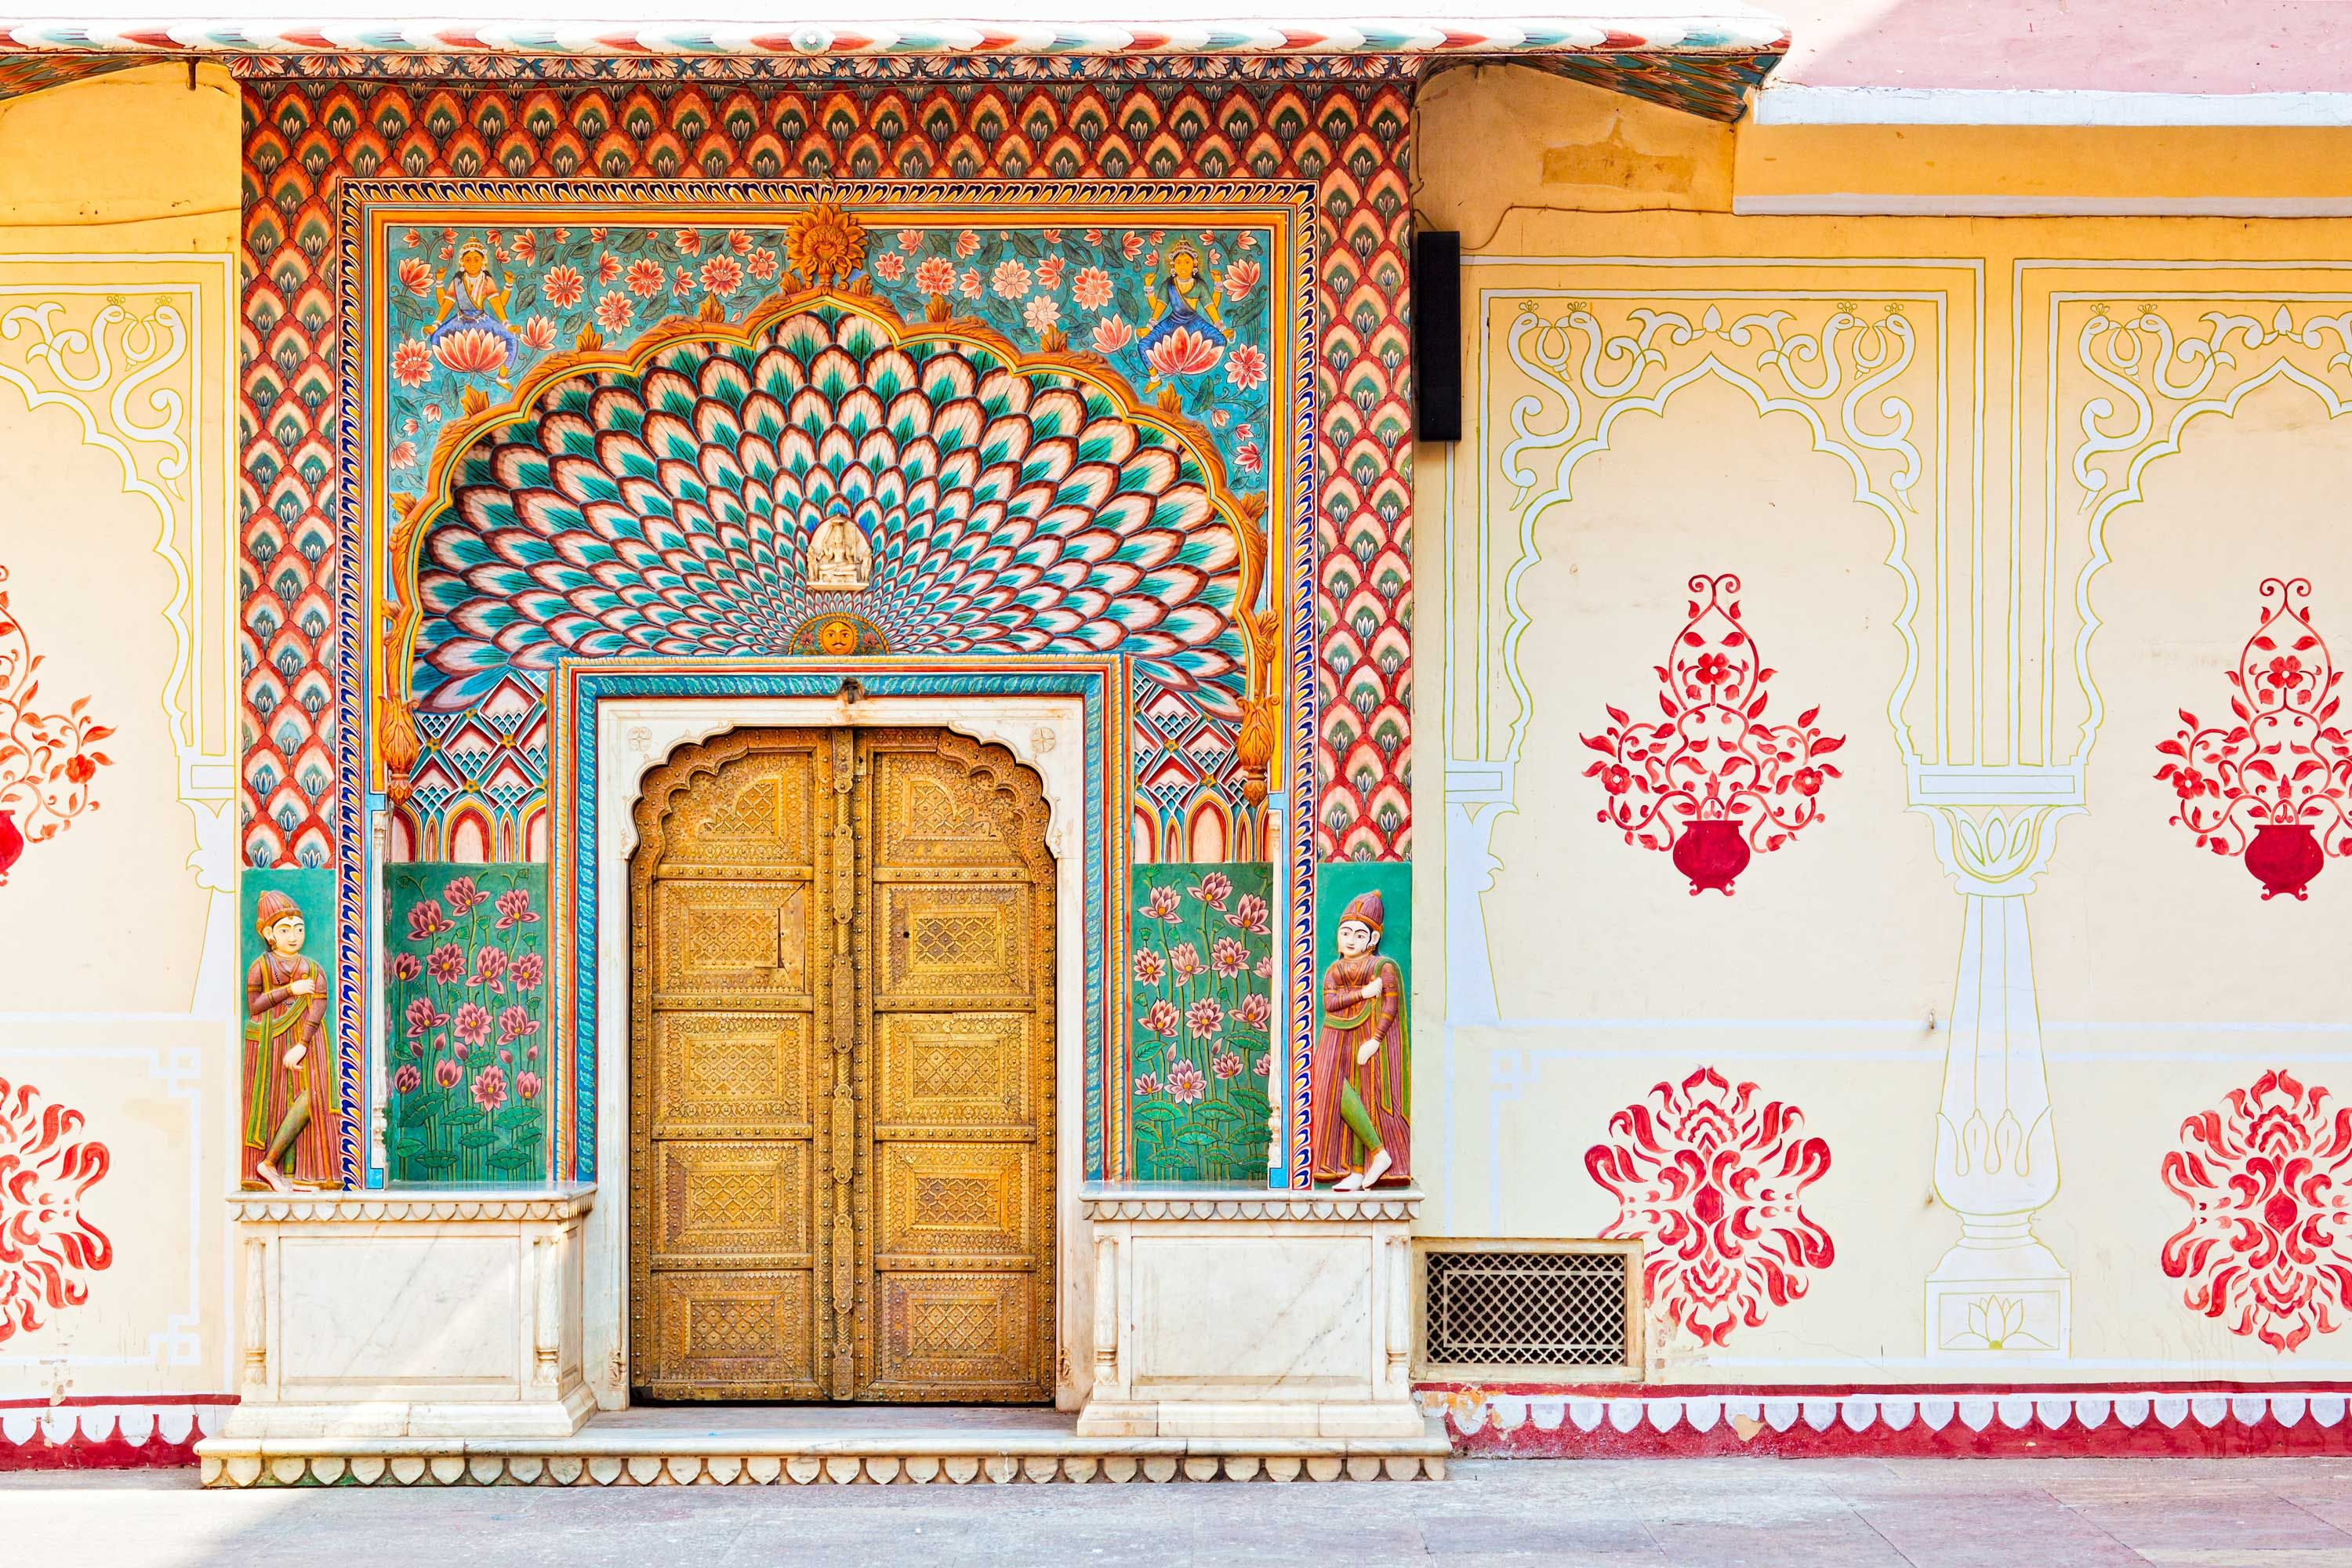 townandcountrymag.com - Jaipur: the ultimate luxury travel guide